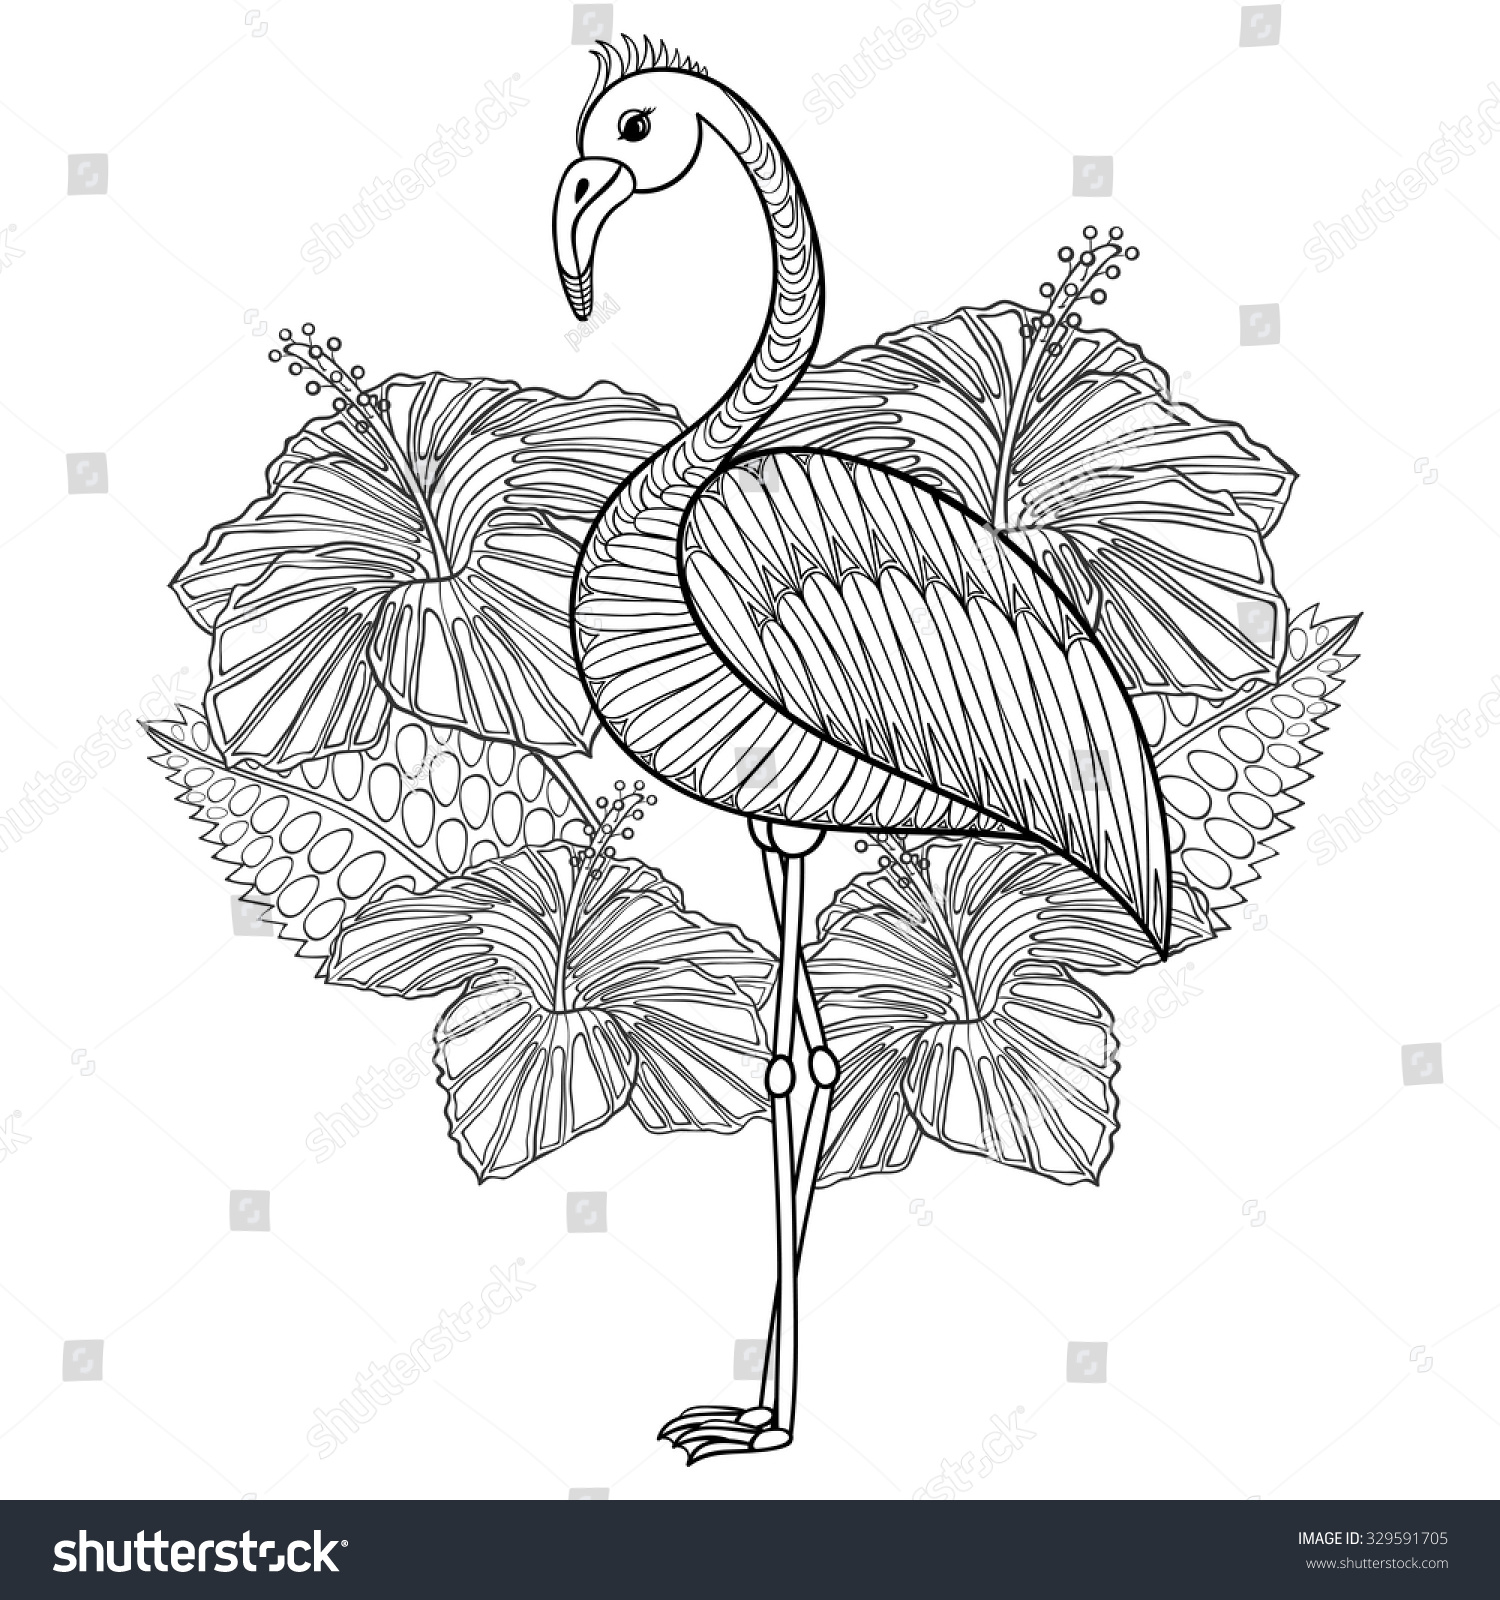 Coloring sheets for adults flamingo - Flamingo In Hibiskus Coloring Page Zentangle Illustartion For Adult Coloring Books Or Tattoos With High